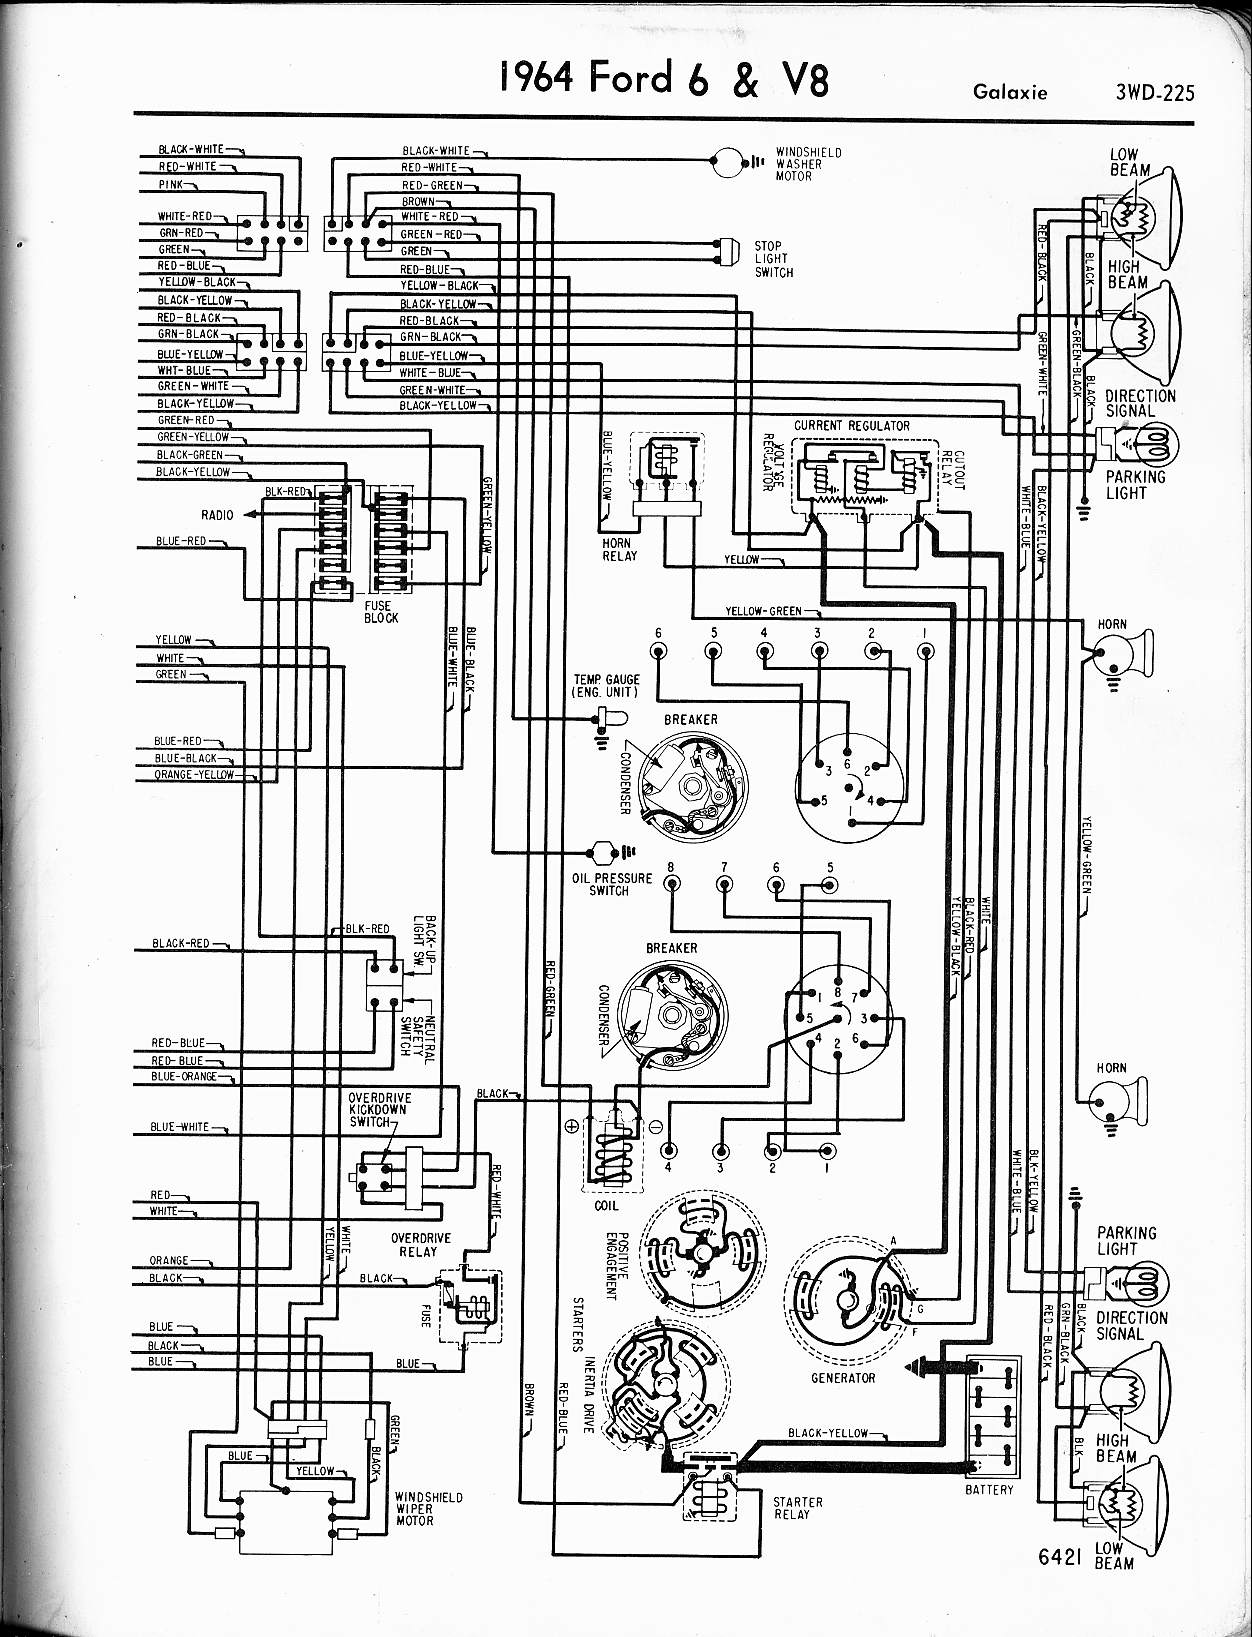 MWire5765 225 57 65 ford wiring diagrams 1964 ford wiring diagram at aneh.co